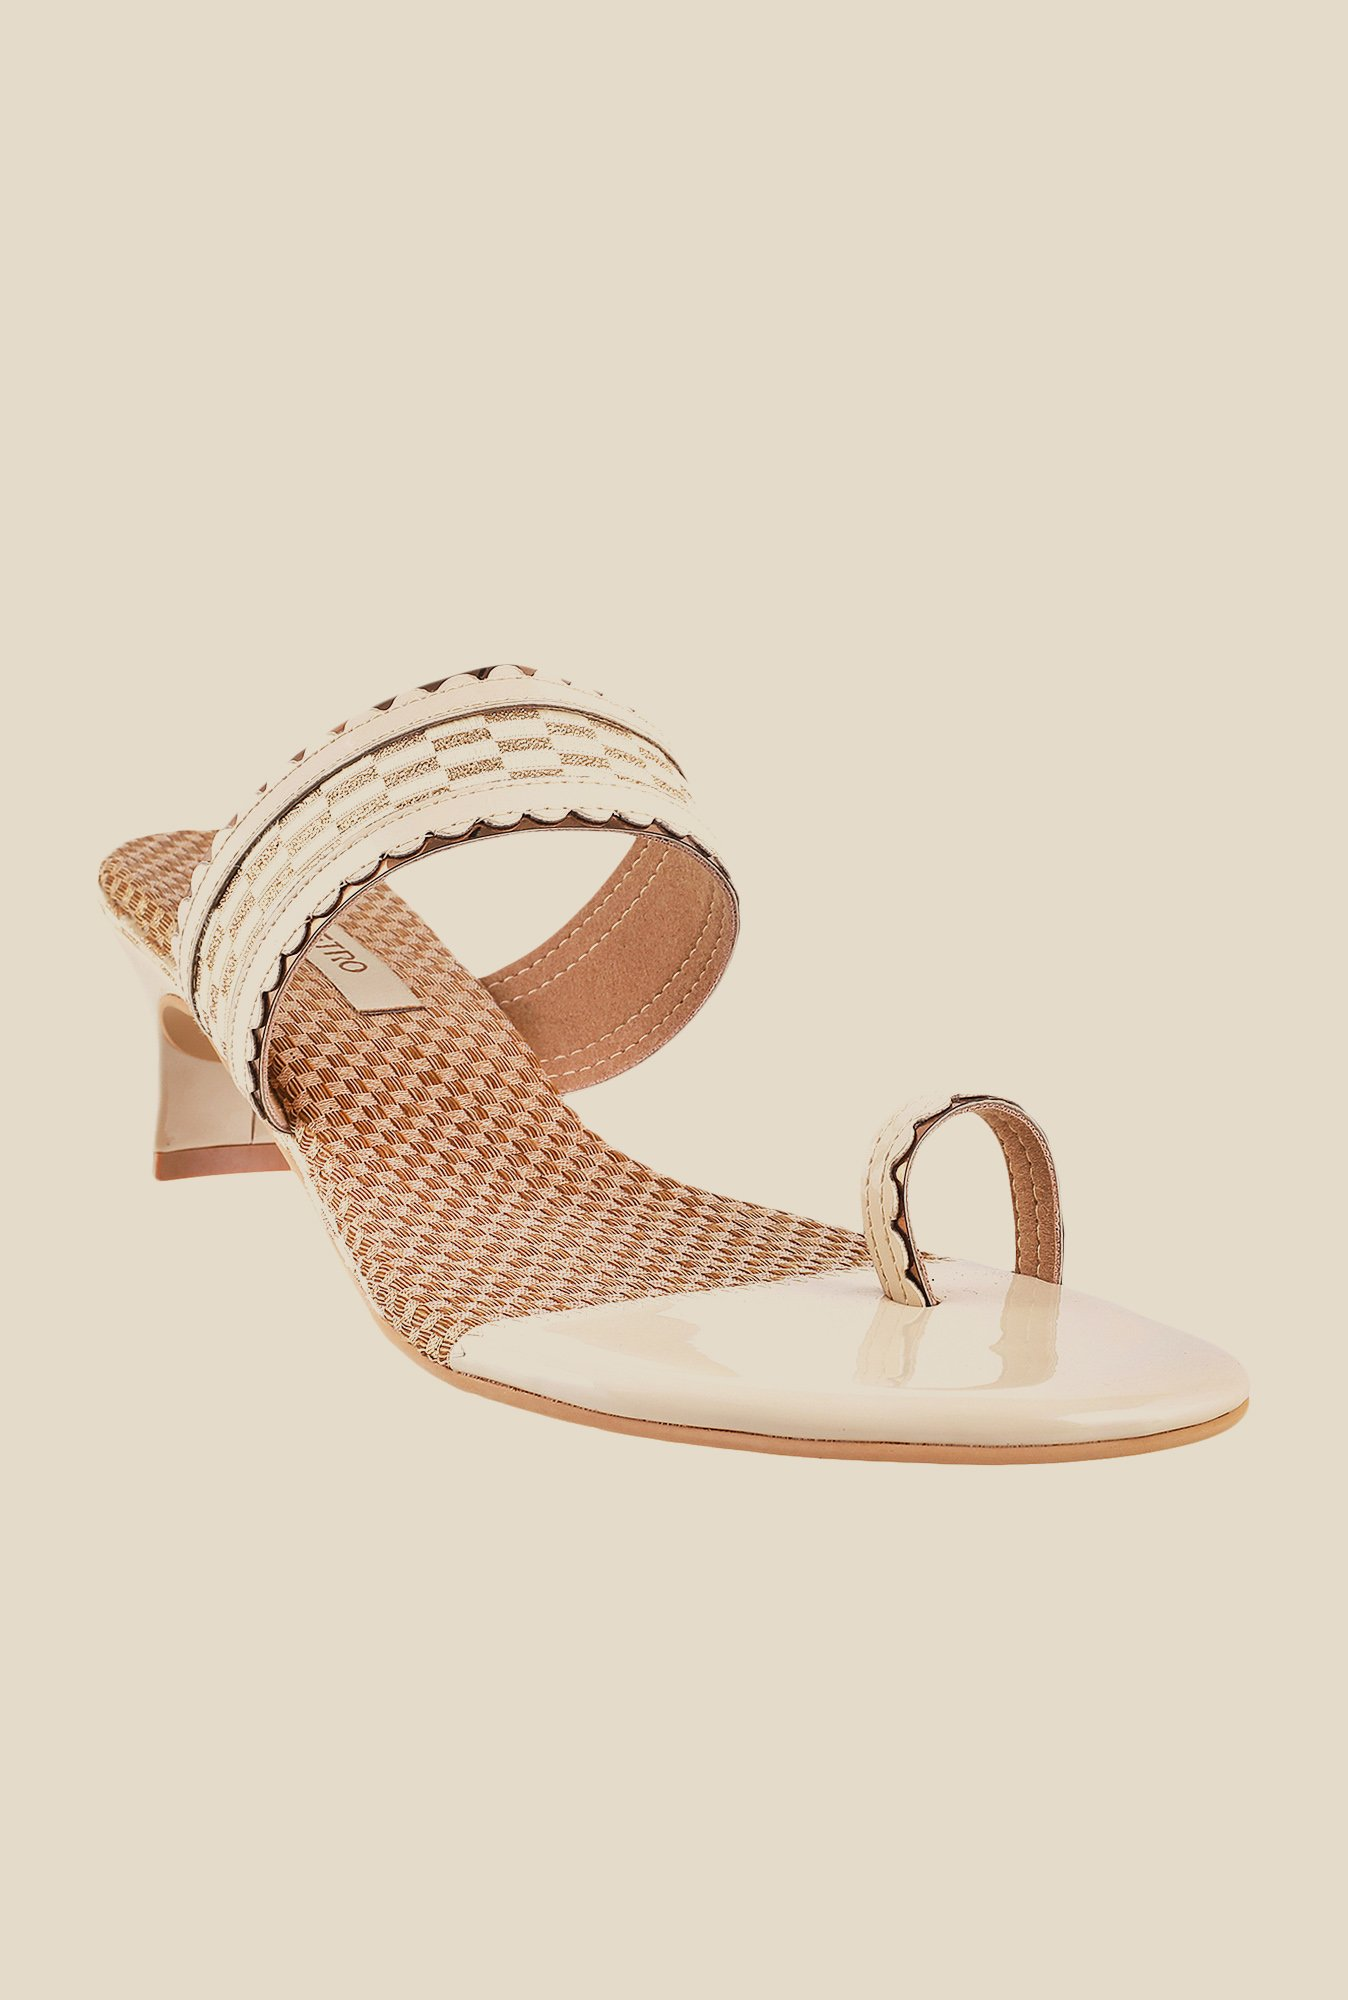 Metro Beige & Golden Toe Ring Sandals